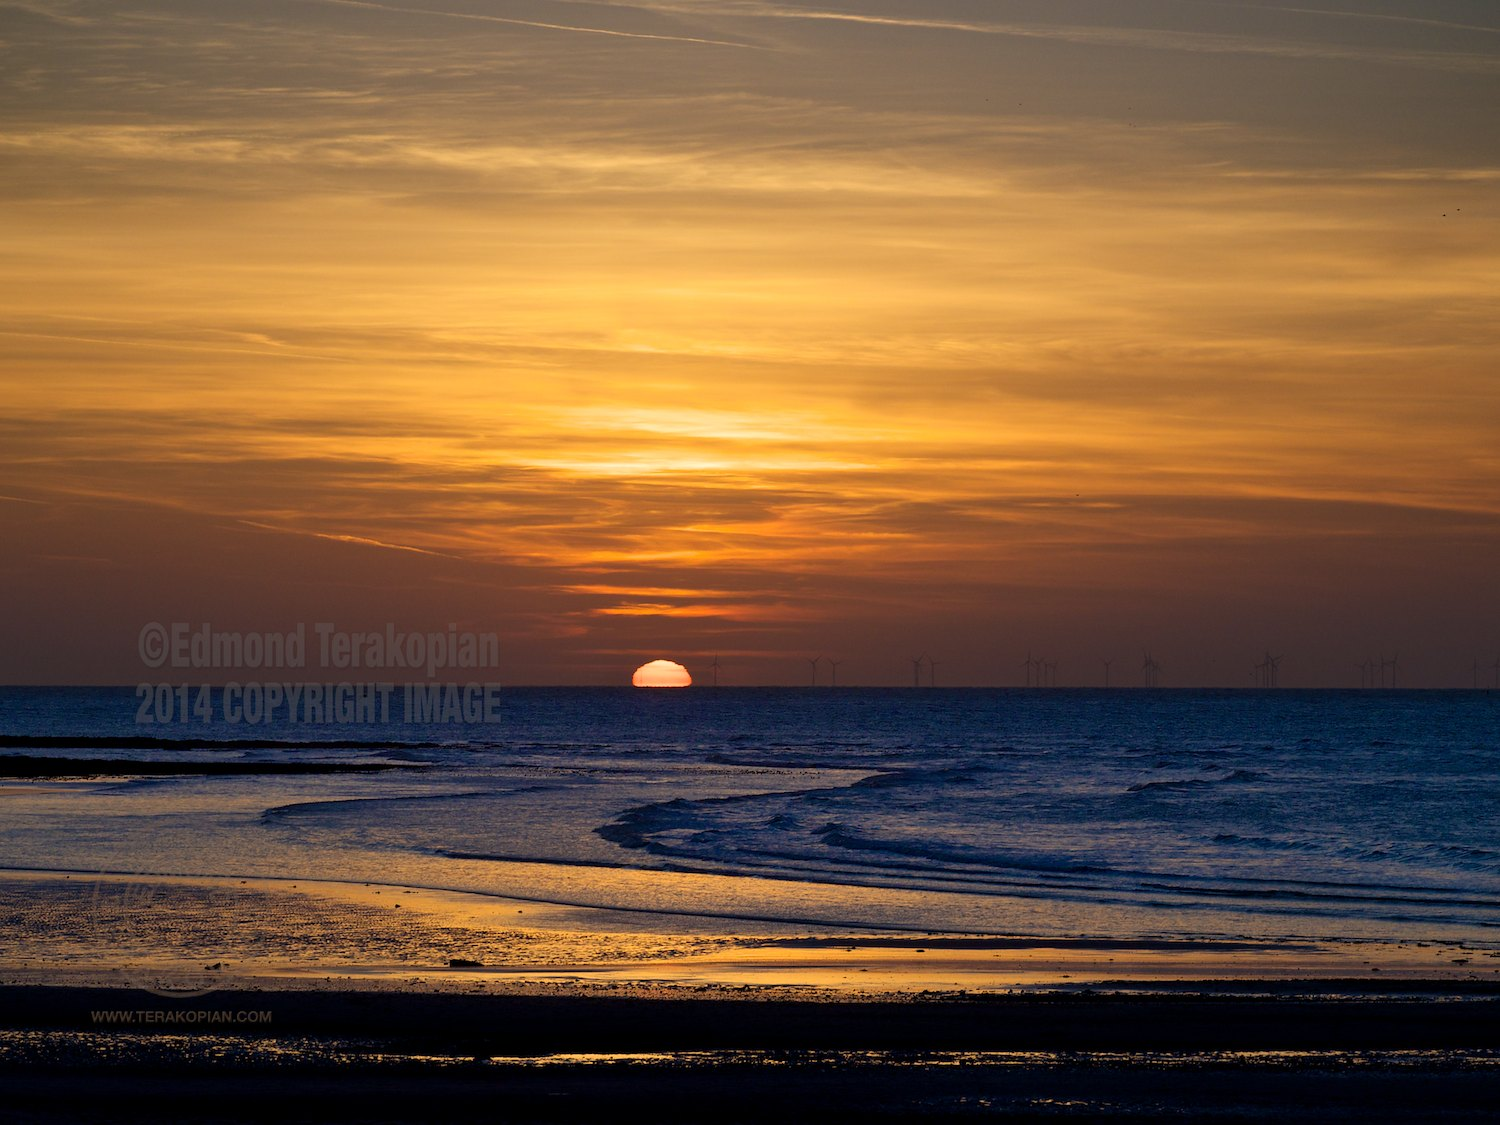 The sun sets over Margate Sands. Kent. April 15, 2014. Photo: ©Edmond Terakopian